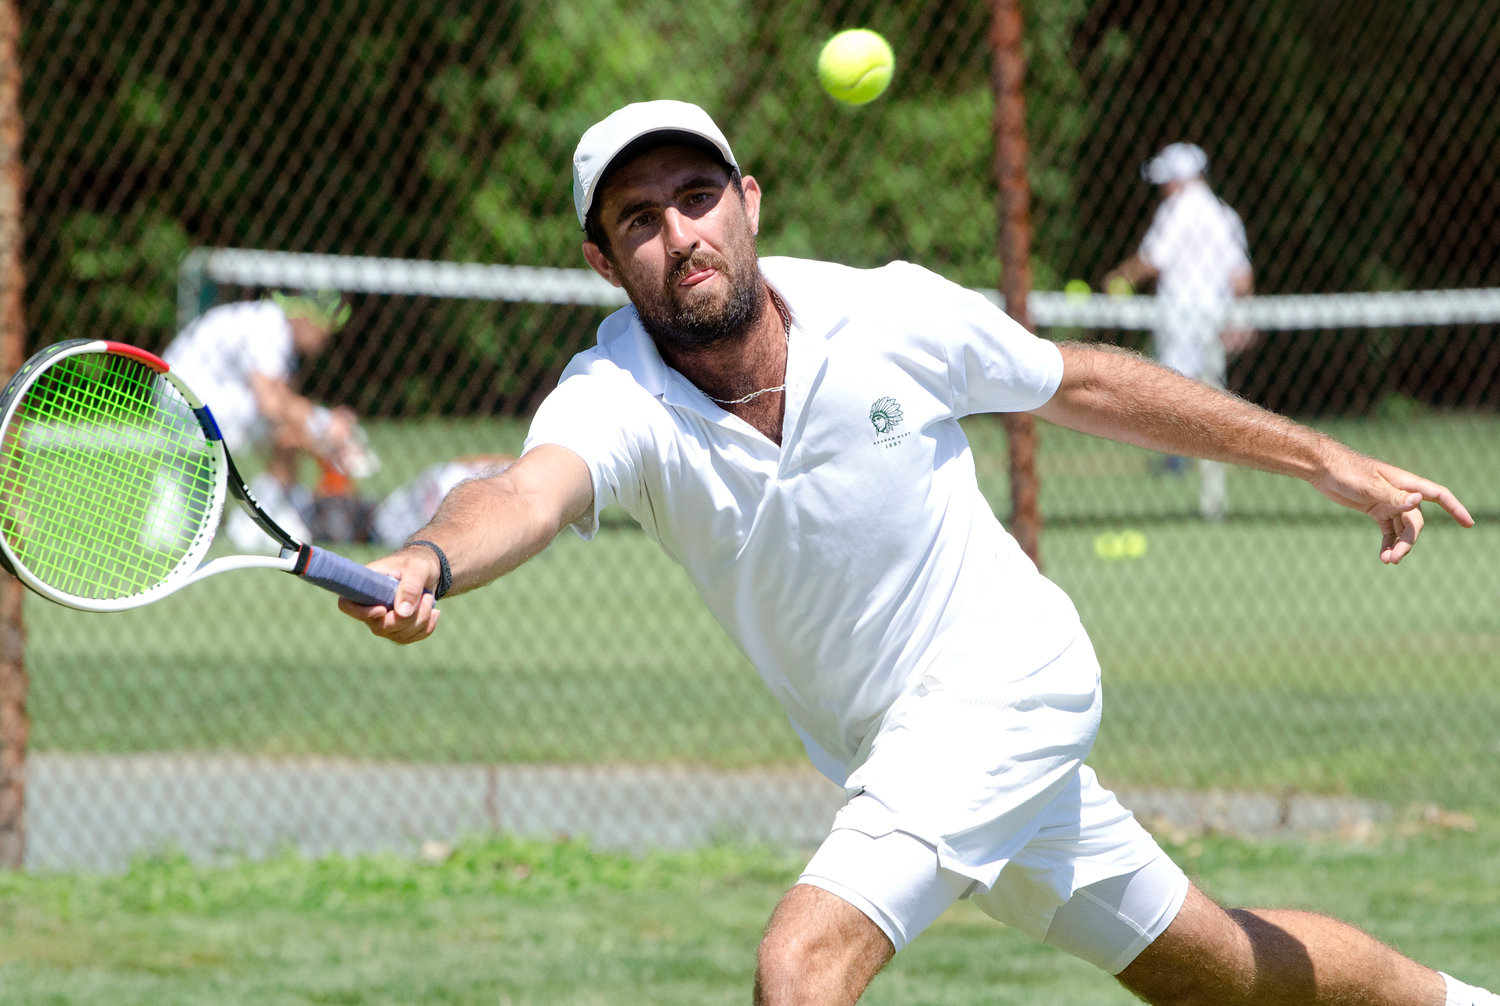 Agawam Hunt Director of Racquets Dana Parziale reaches for a volley during singles play in the Second Annual New England Grass Court Open Tourney played at the club over the weekend, August 7-9. Parziale won the doubles draw with club member Evan Ambrose.